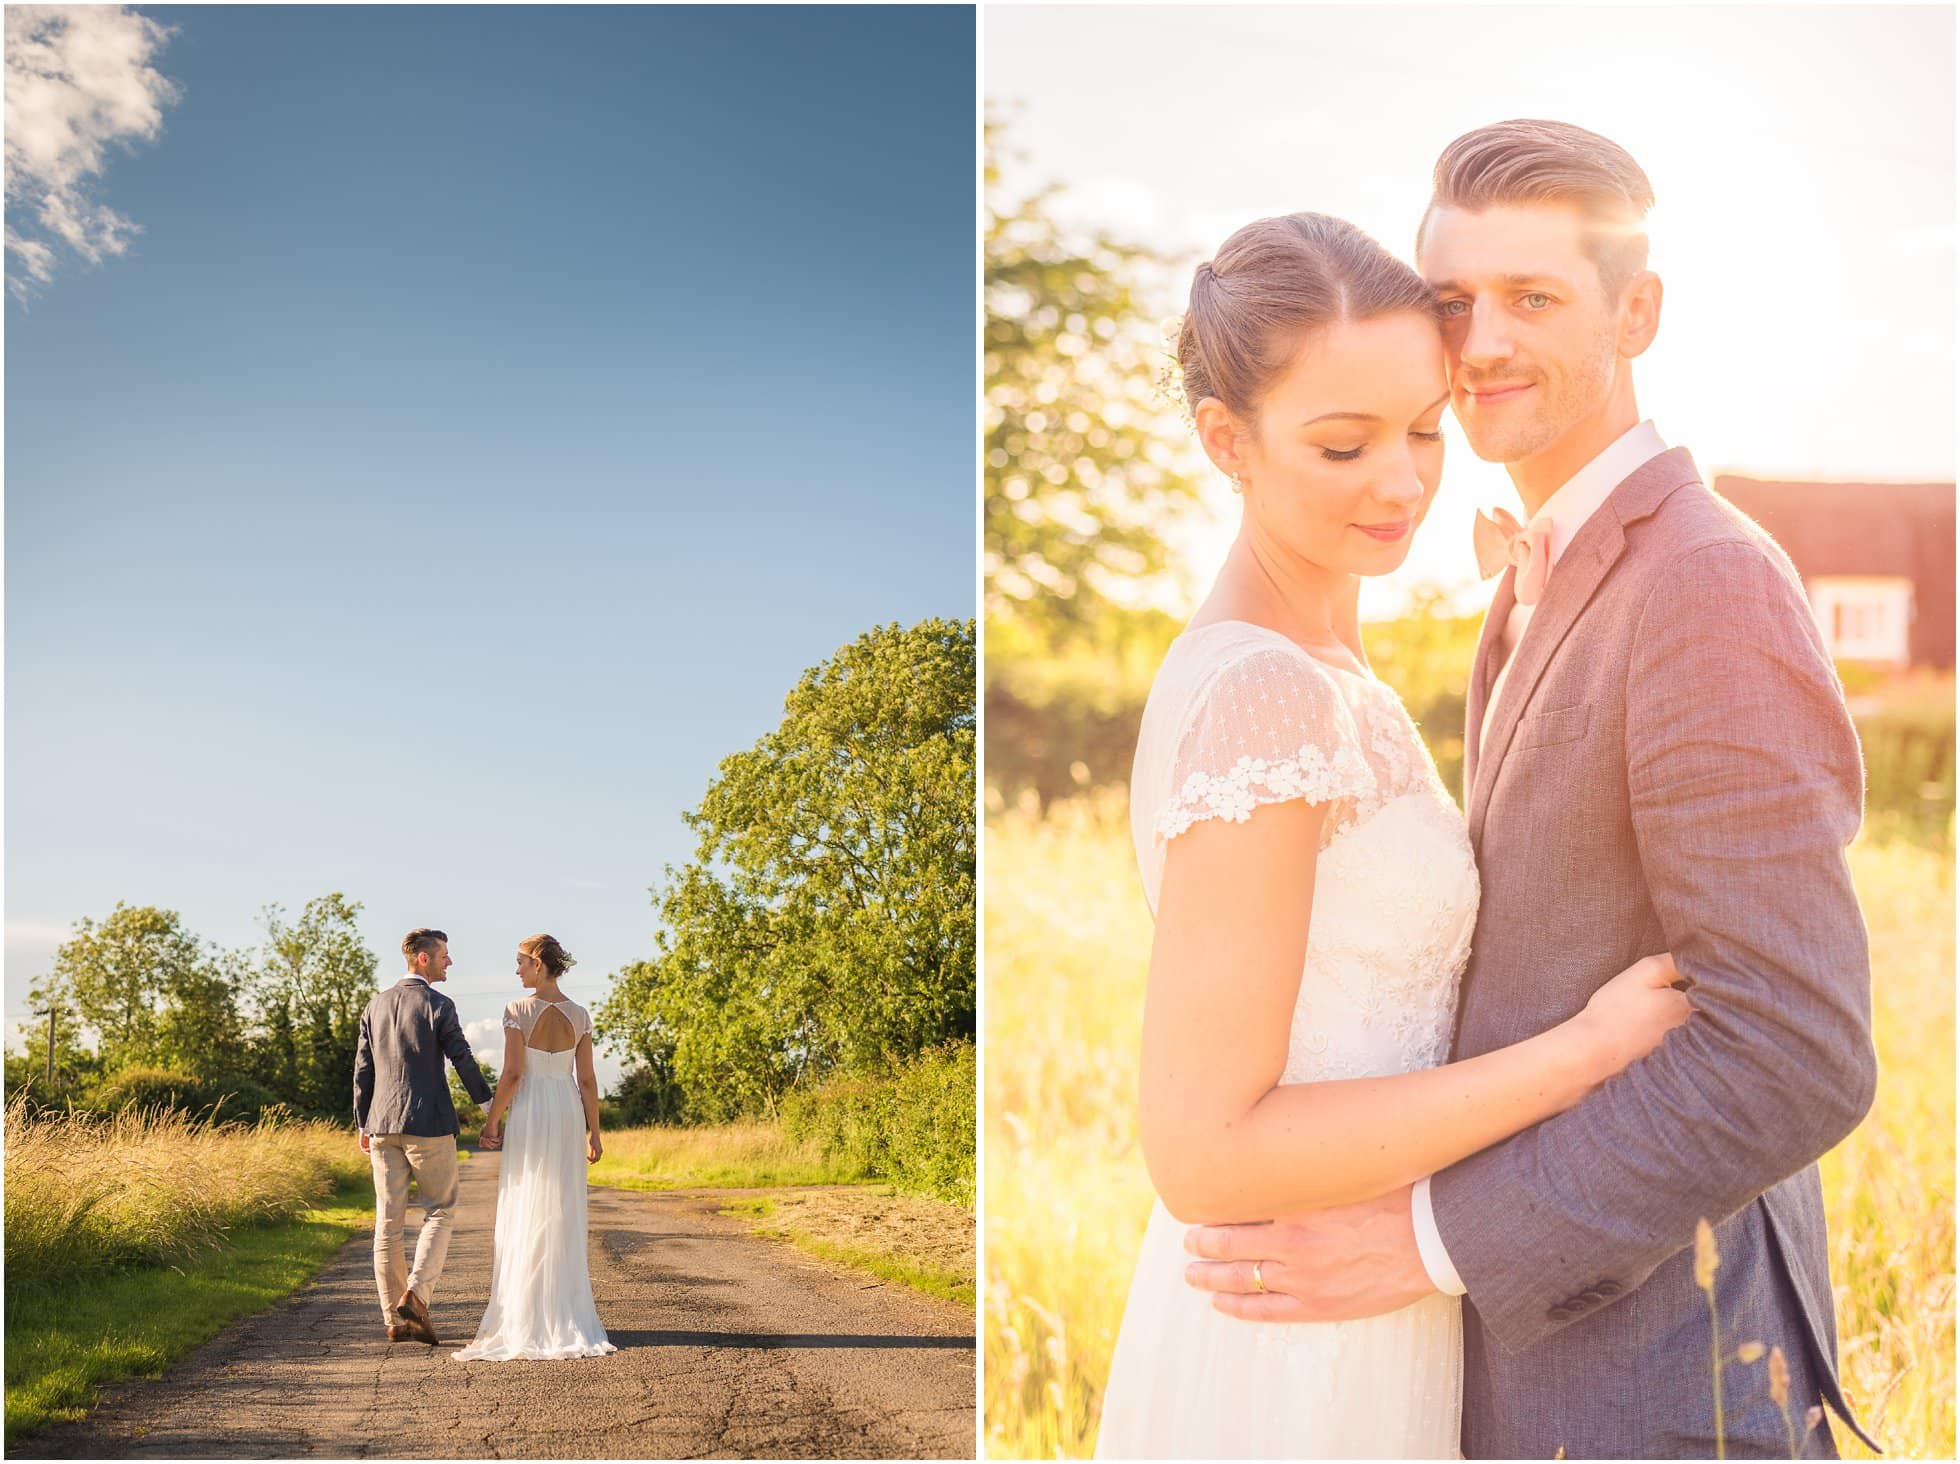 Bride and Groom portraits during a suffolk wedding photographer's dream wedding